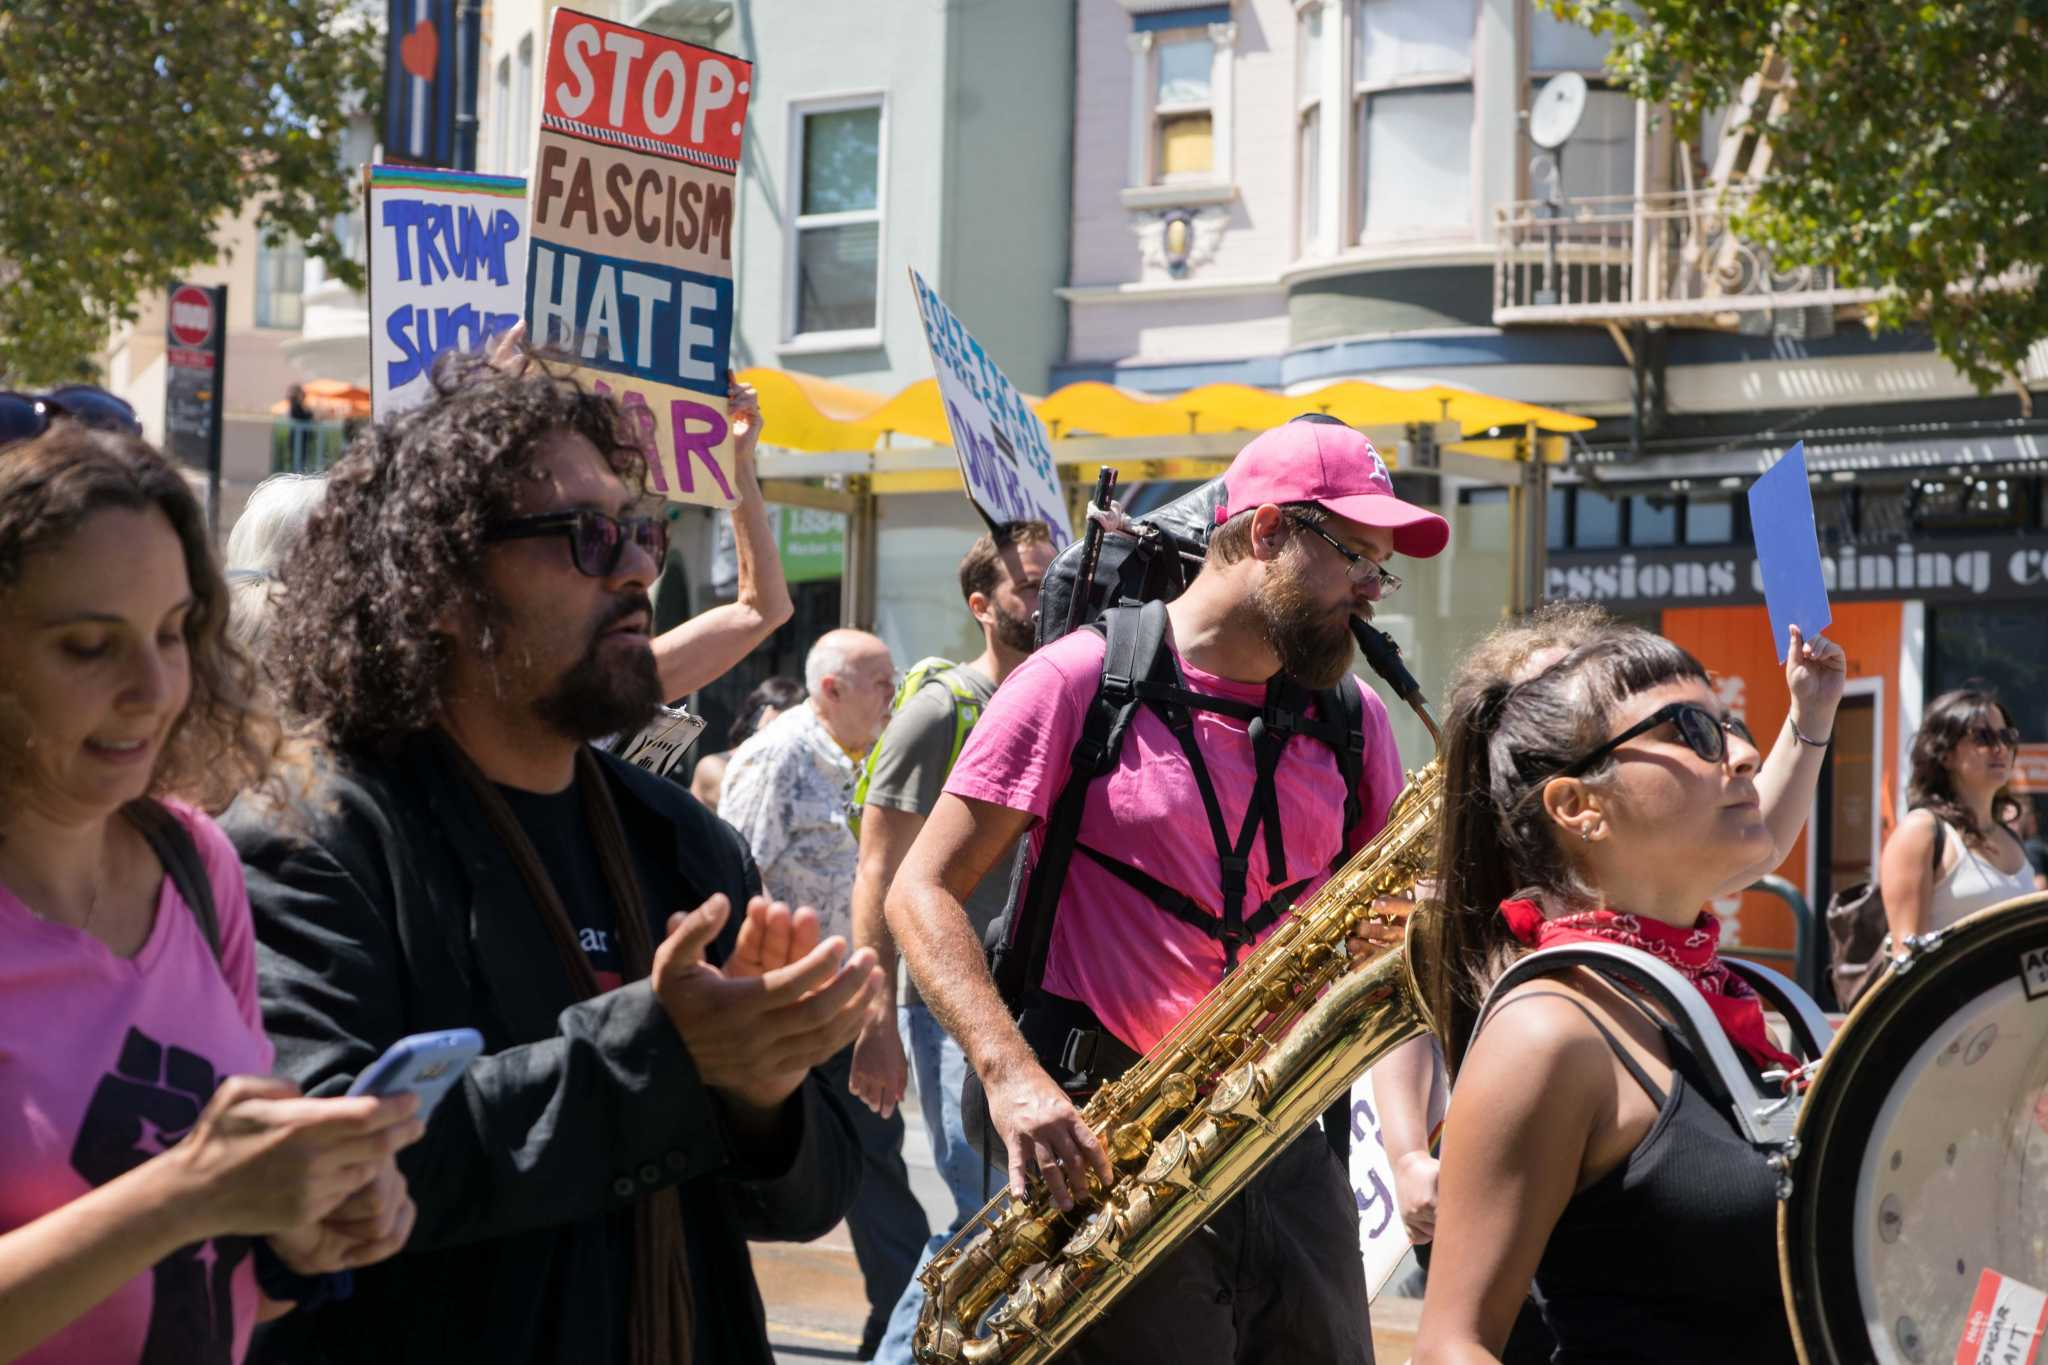 People play instruments during a counter-protest following the cancellation of a right-wing rally called